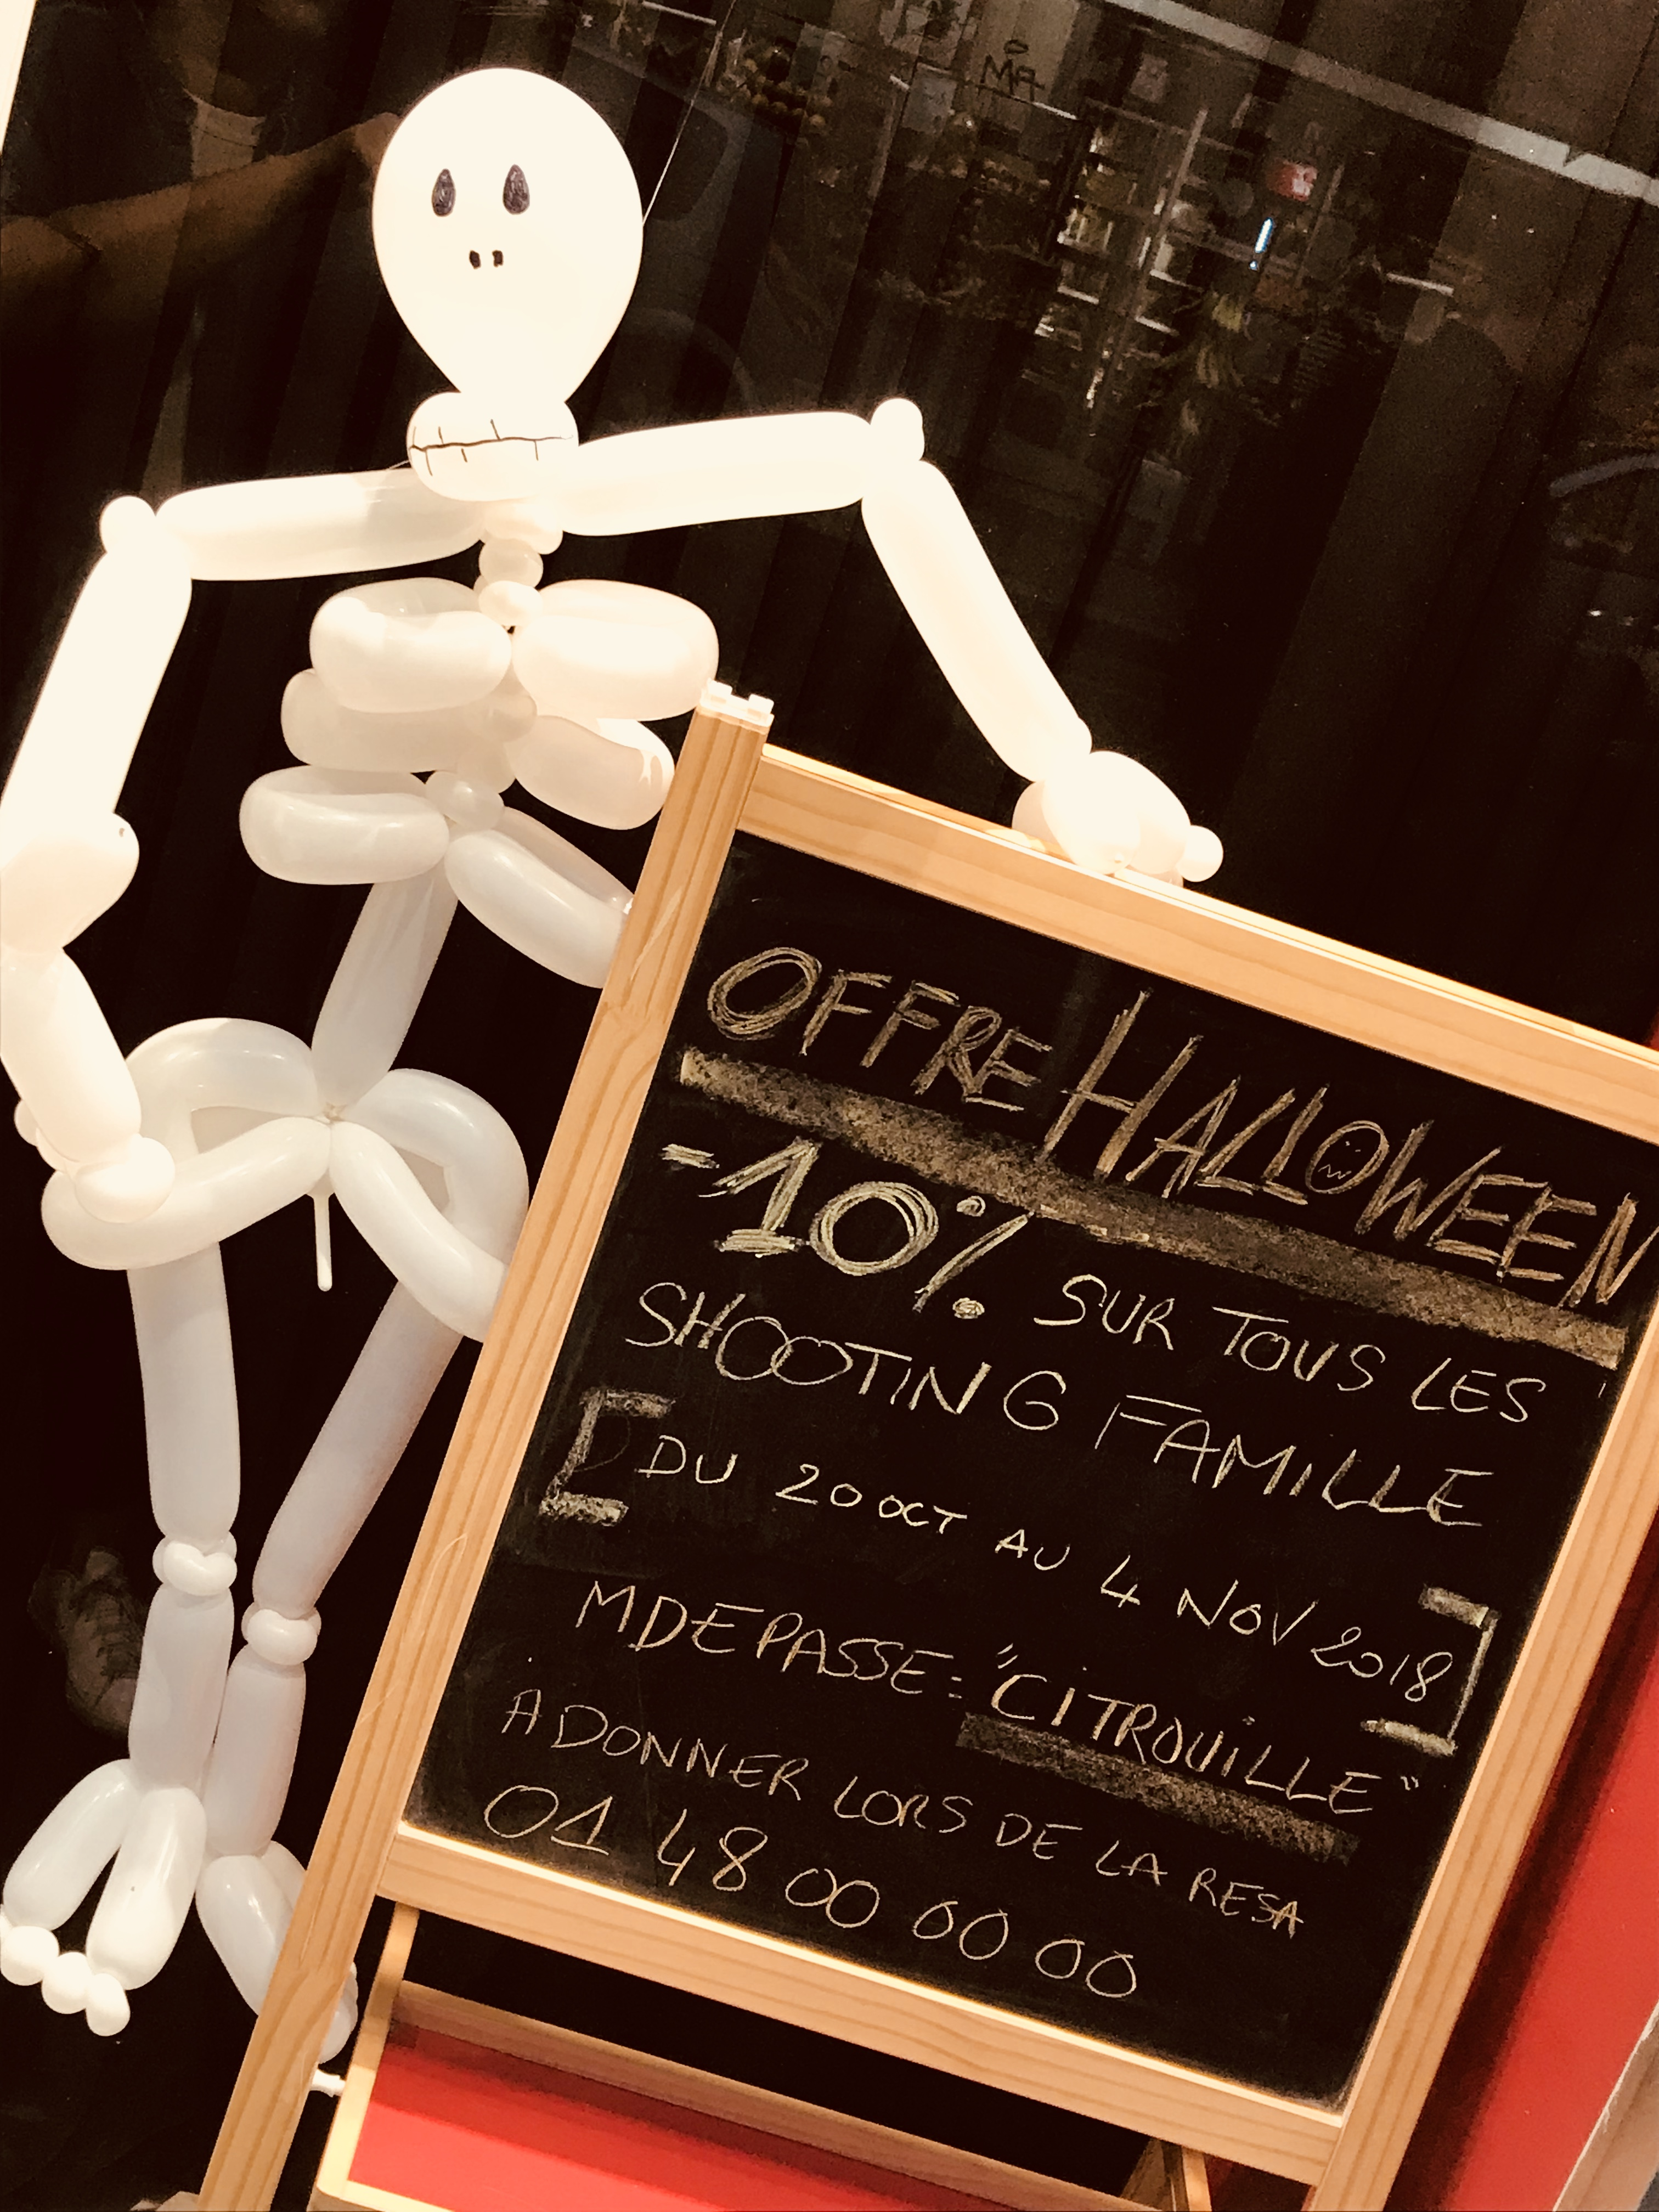 OFFRE SPECIALE SHOOTING FAMILLE HALLOWEEN…